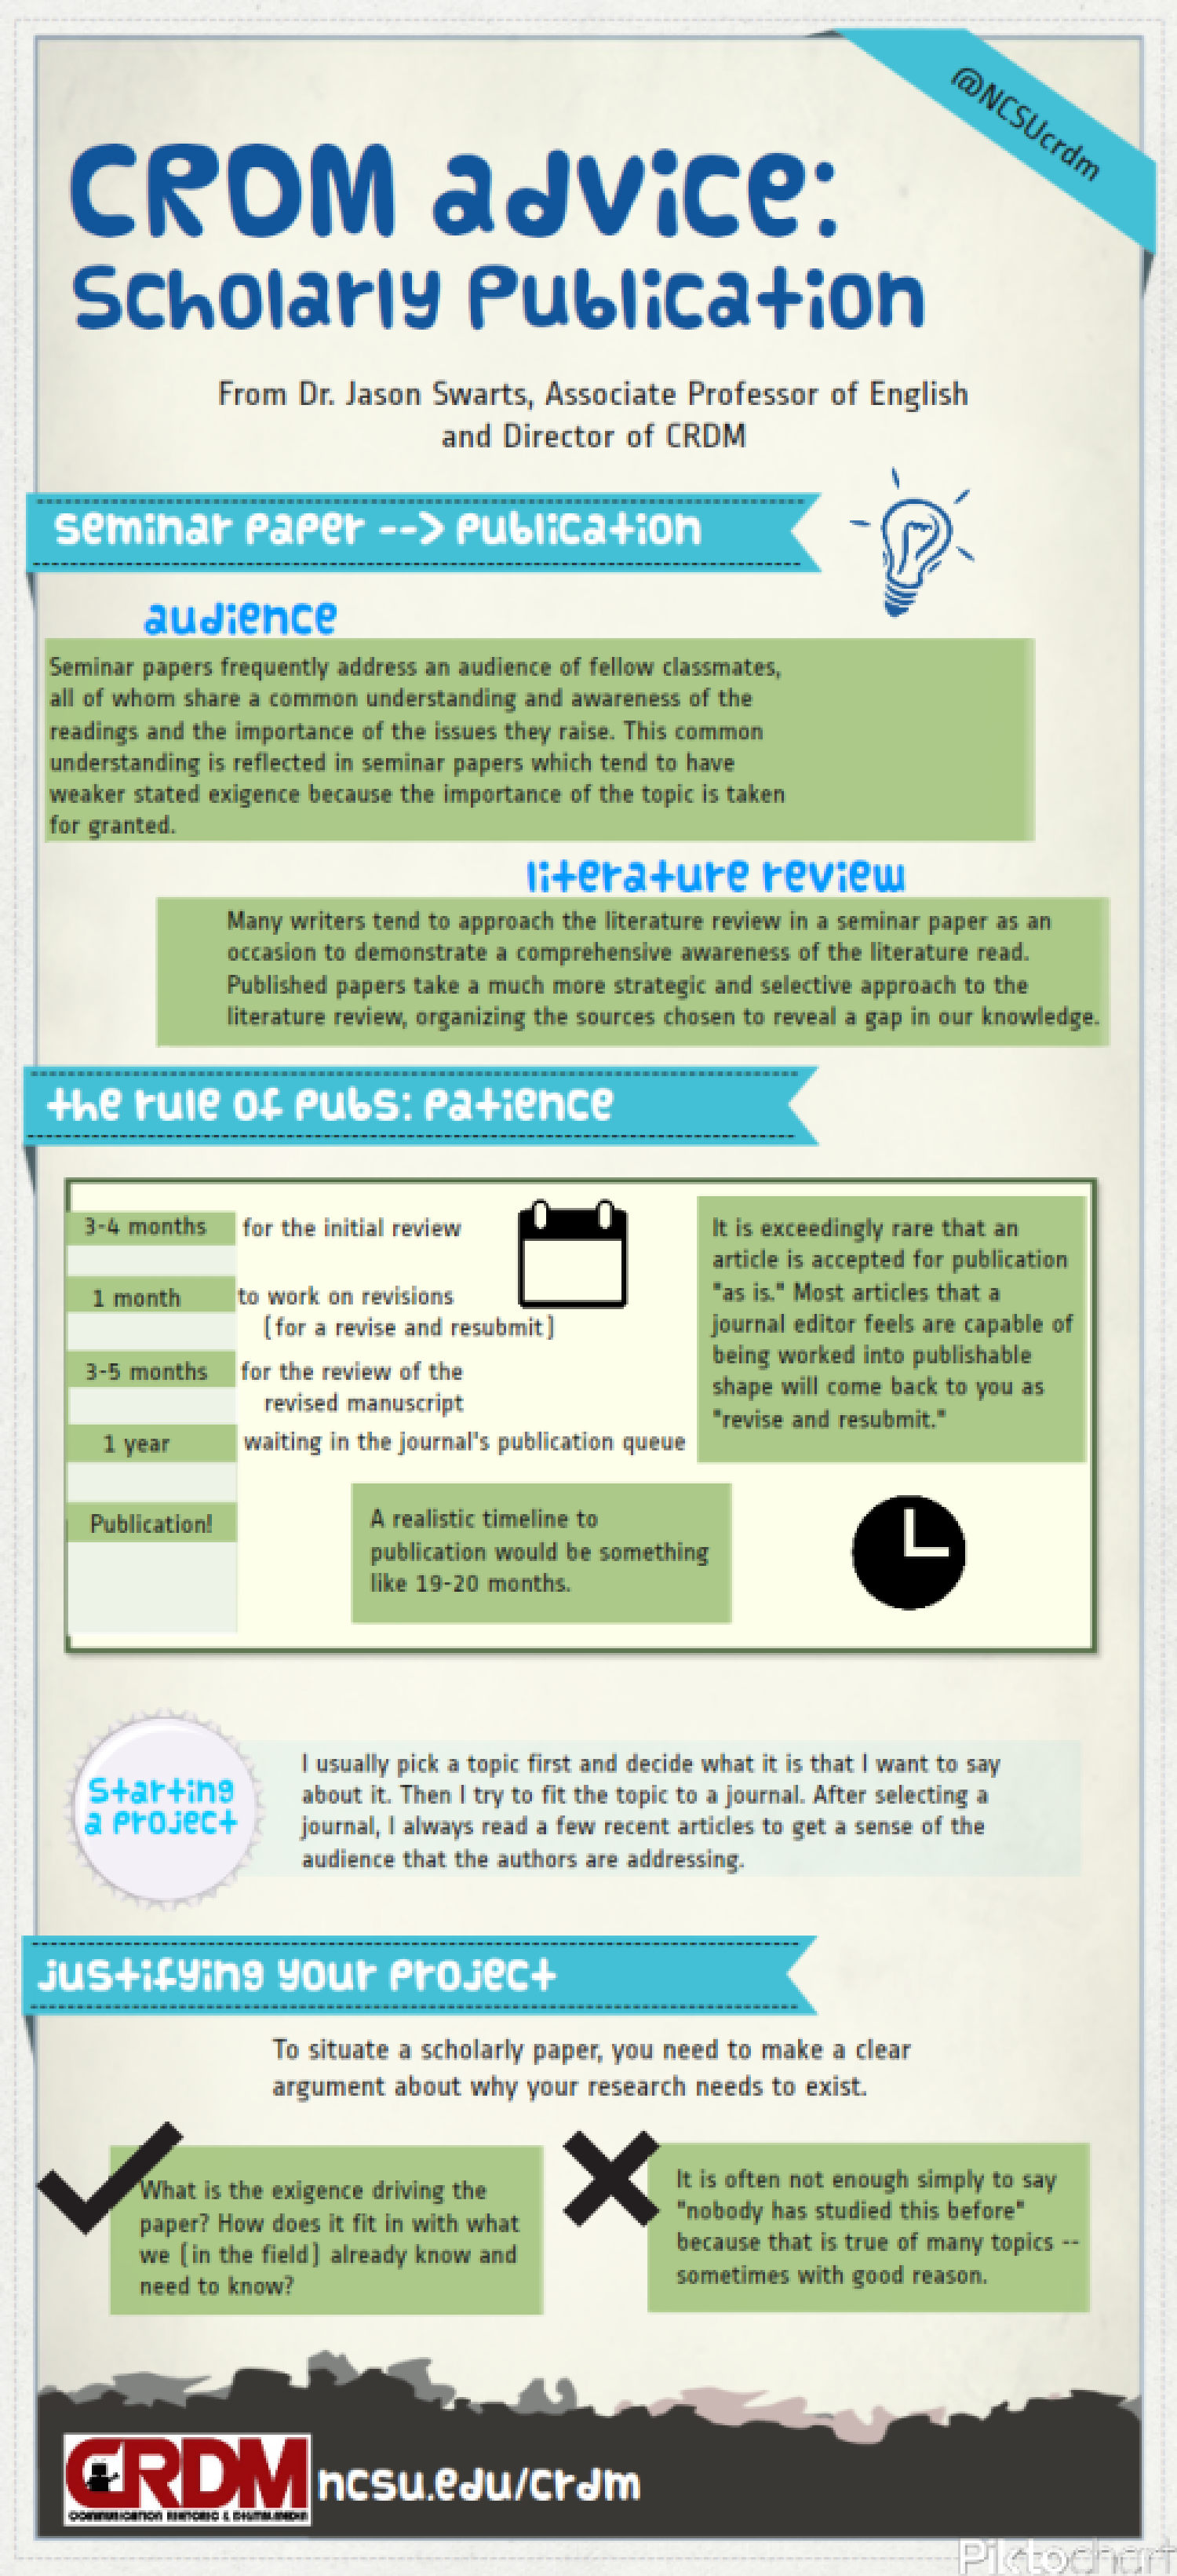 Publication Advice from Dr. Jason Swarts Infographic